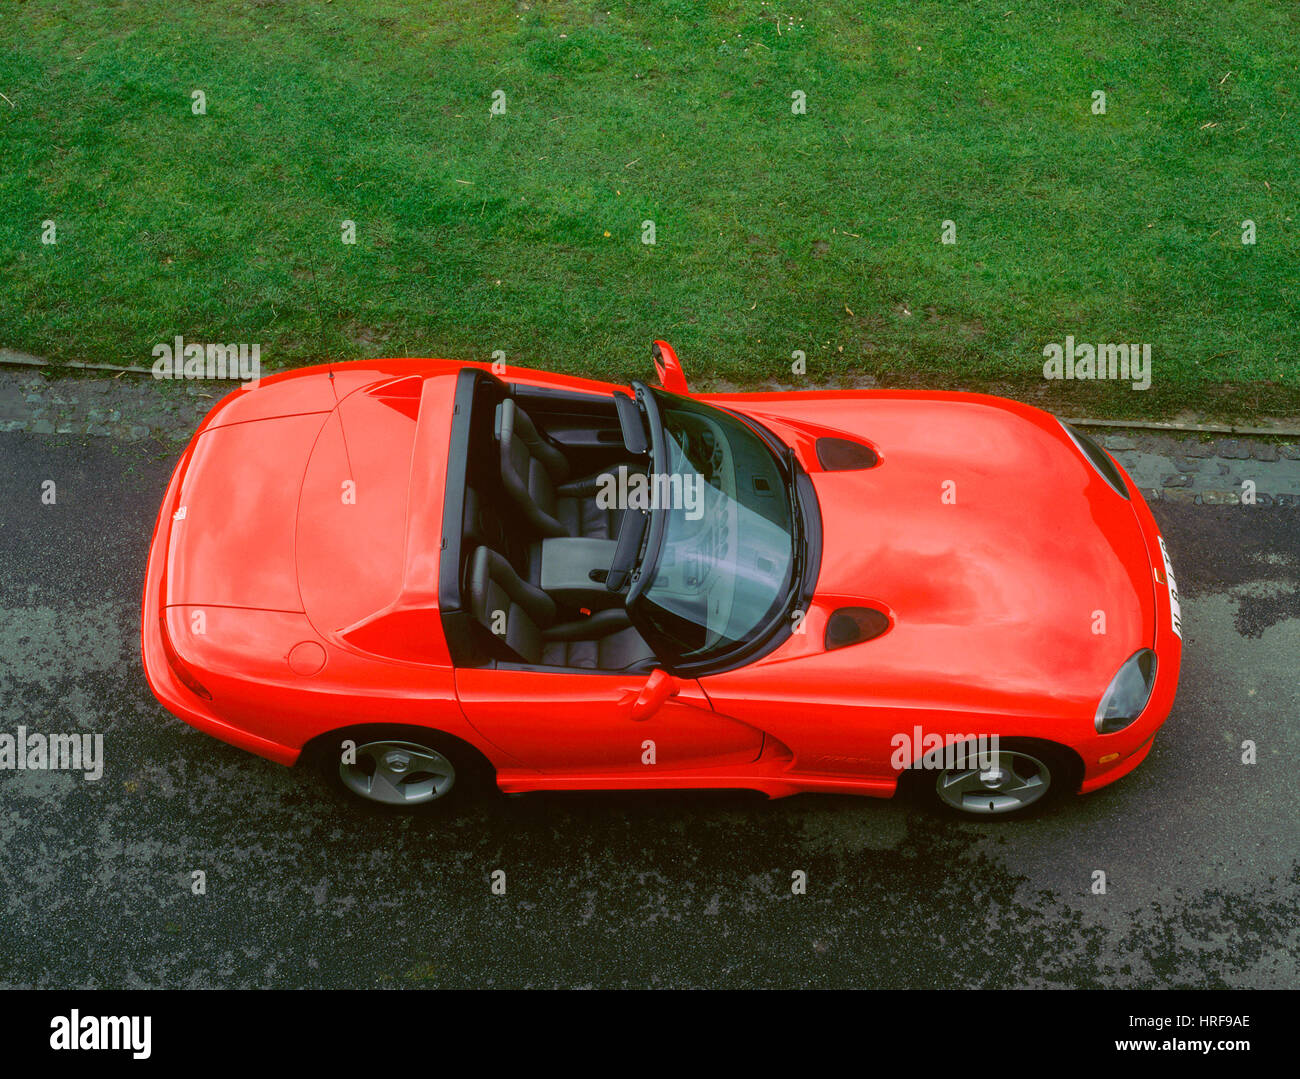 1993 Dodge Viper - Stock Image